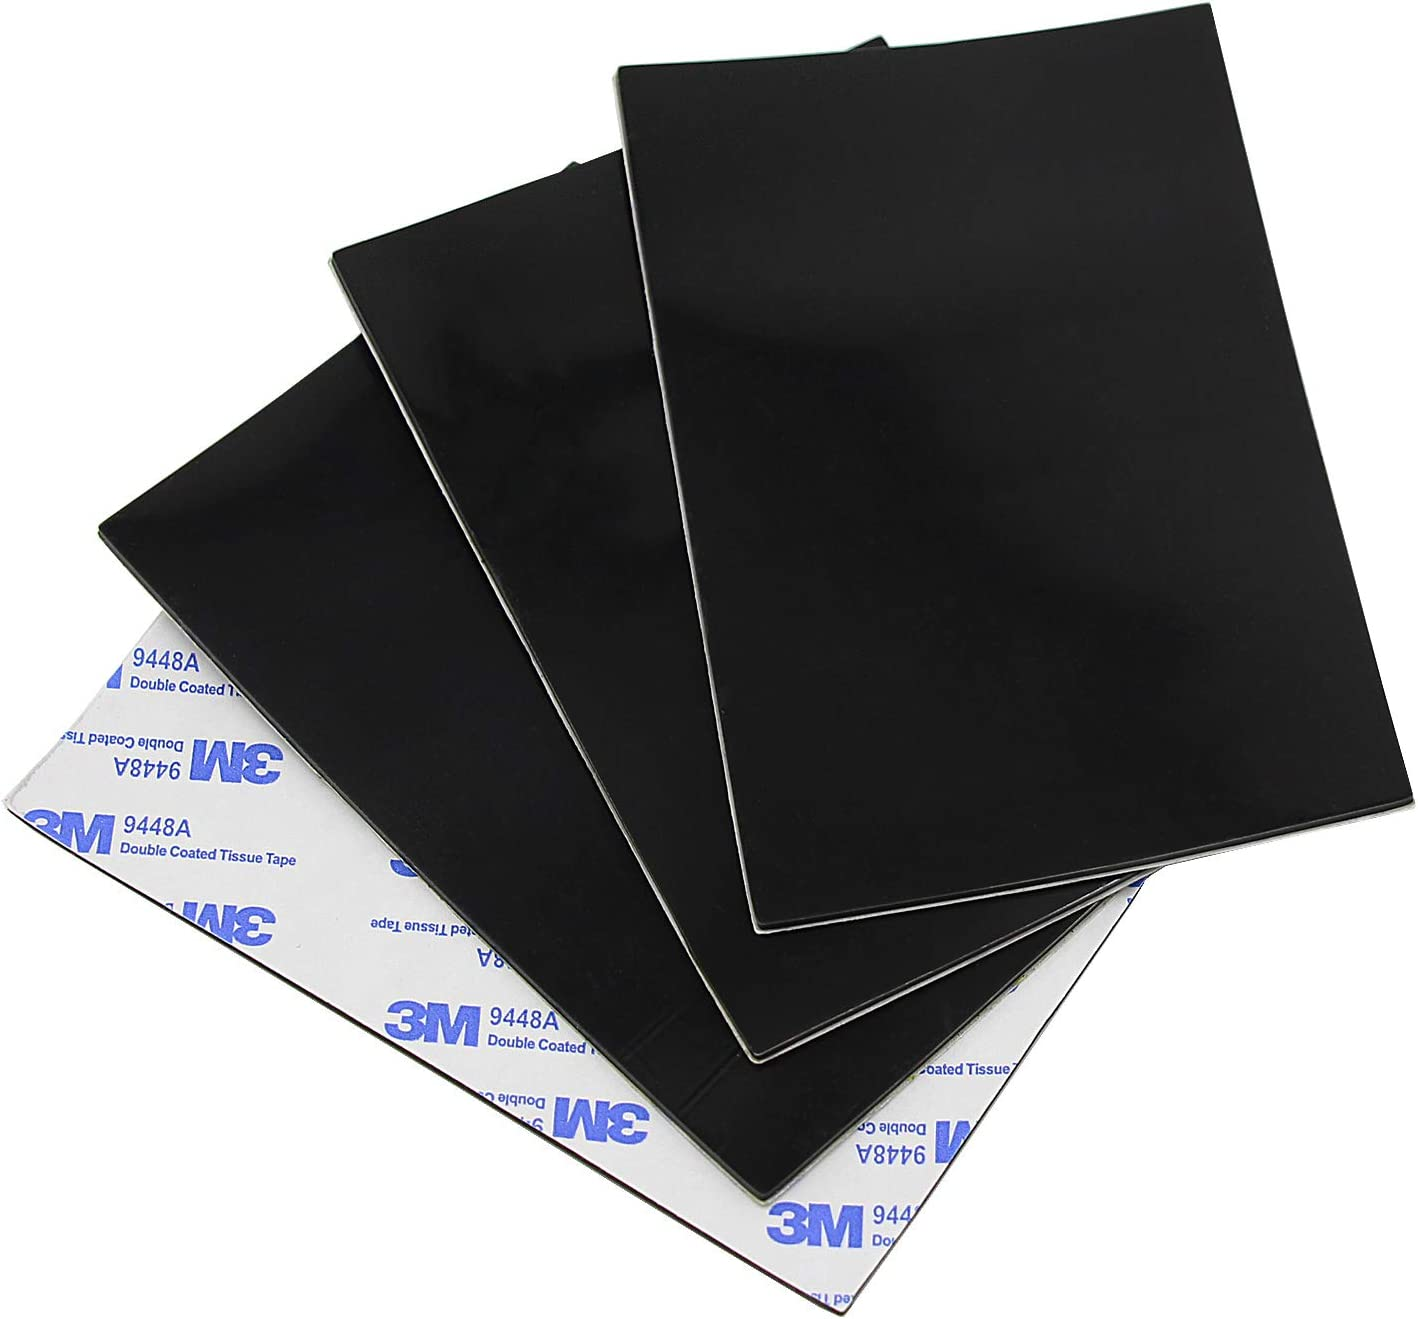 4 Pack of Rubber Pads Non Slip Furniture Pads Floor Protectors with Self Adhesive Back Glue, 1/12 inch Thick Rubber Sheet Silicone Gasket Material Non Skid Furniture Grippers - Black